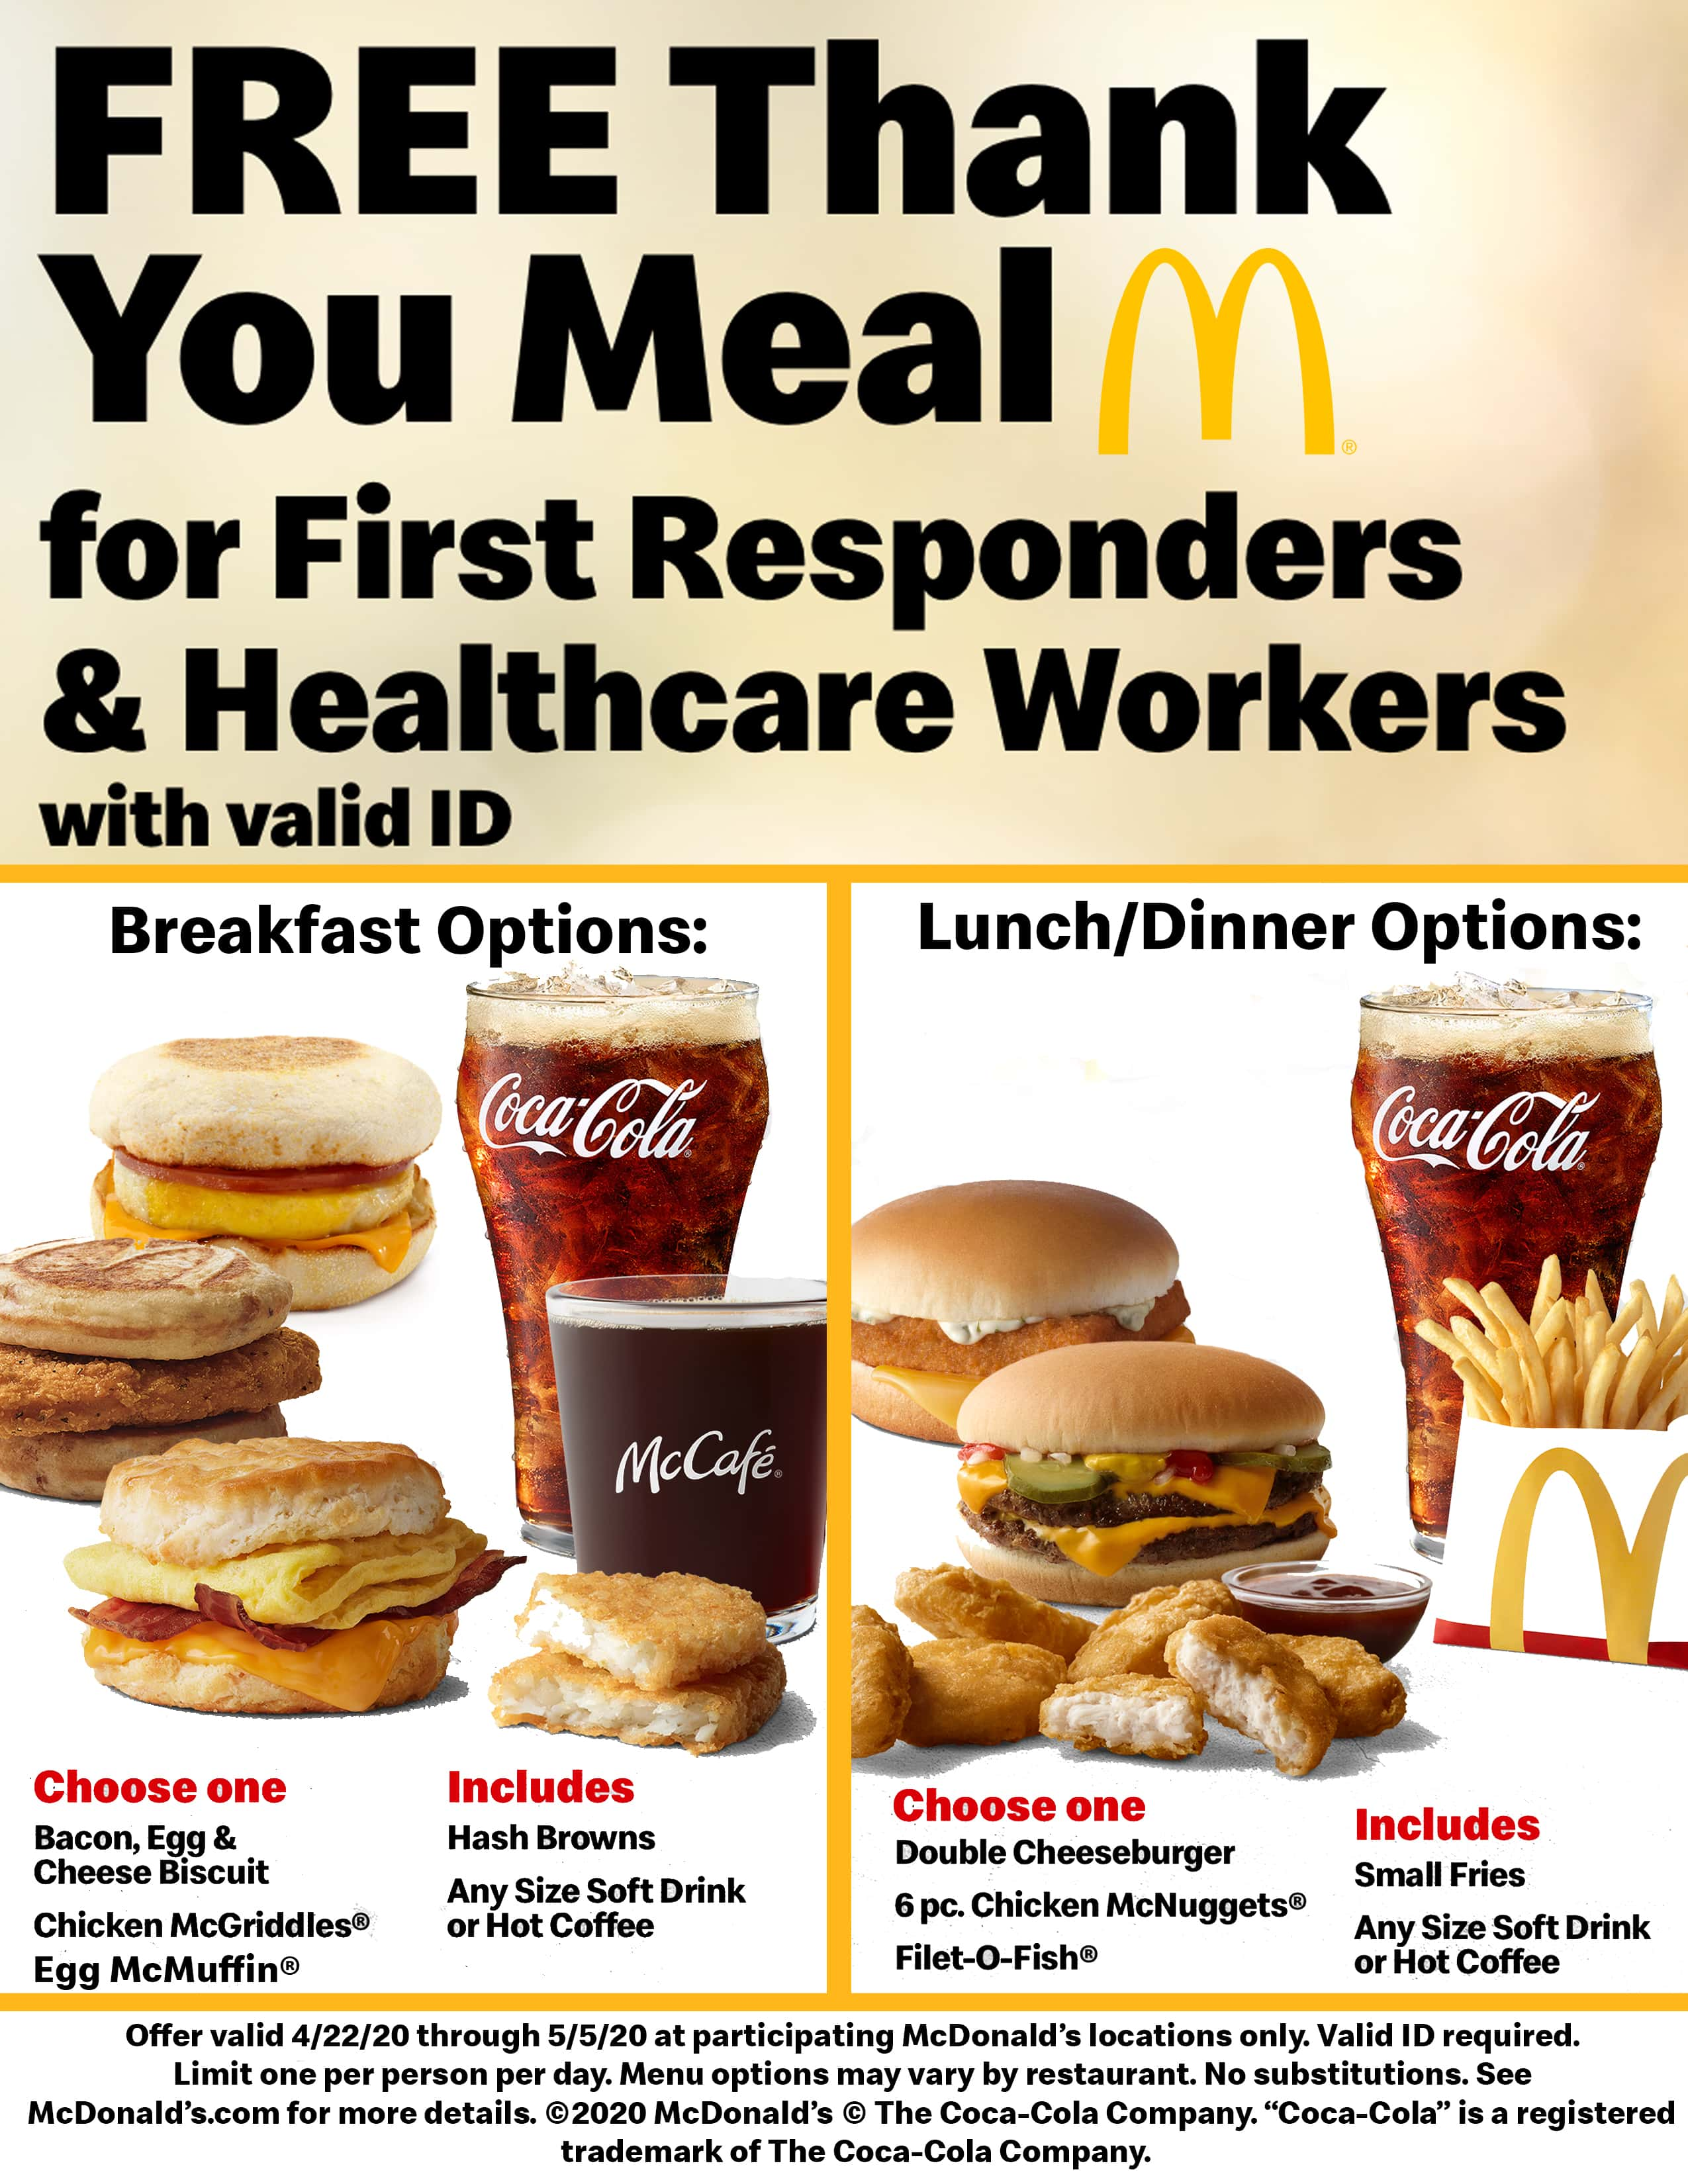 McDonald's Free Thank You Meal for First Responders ...